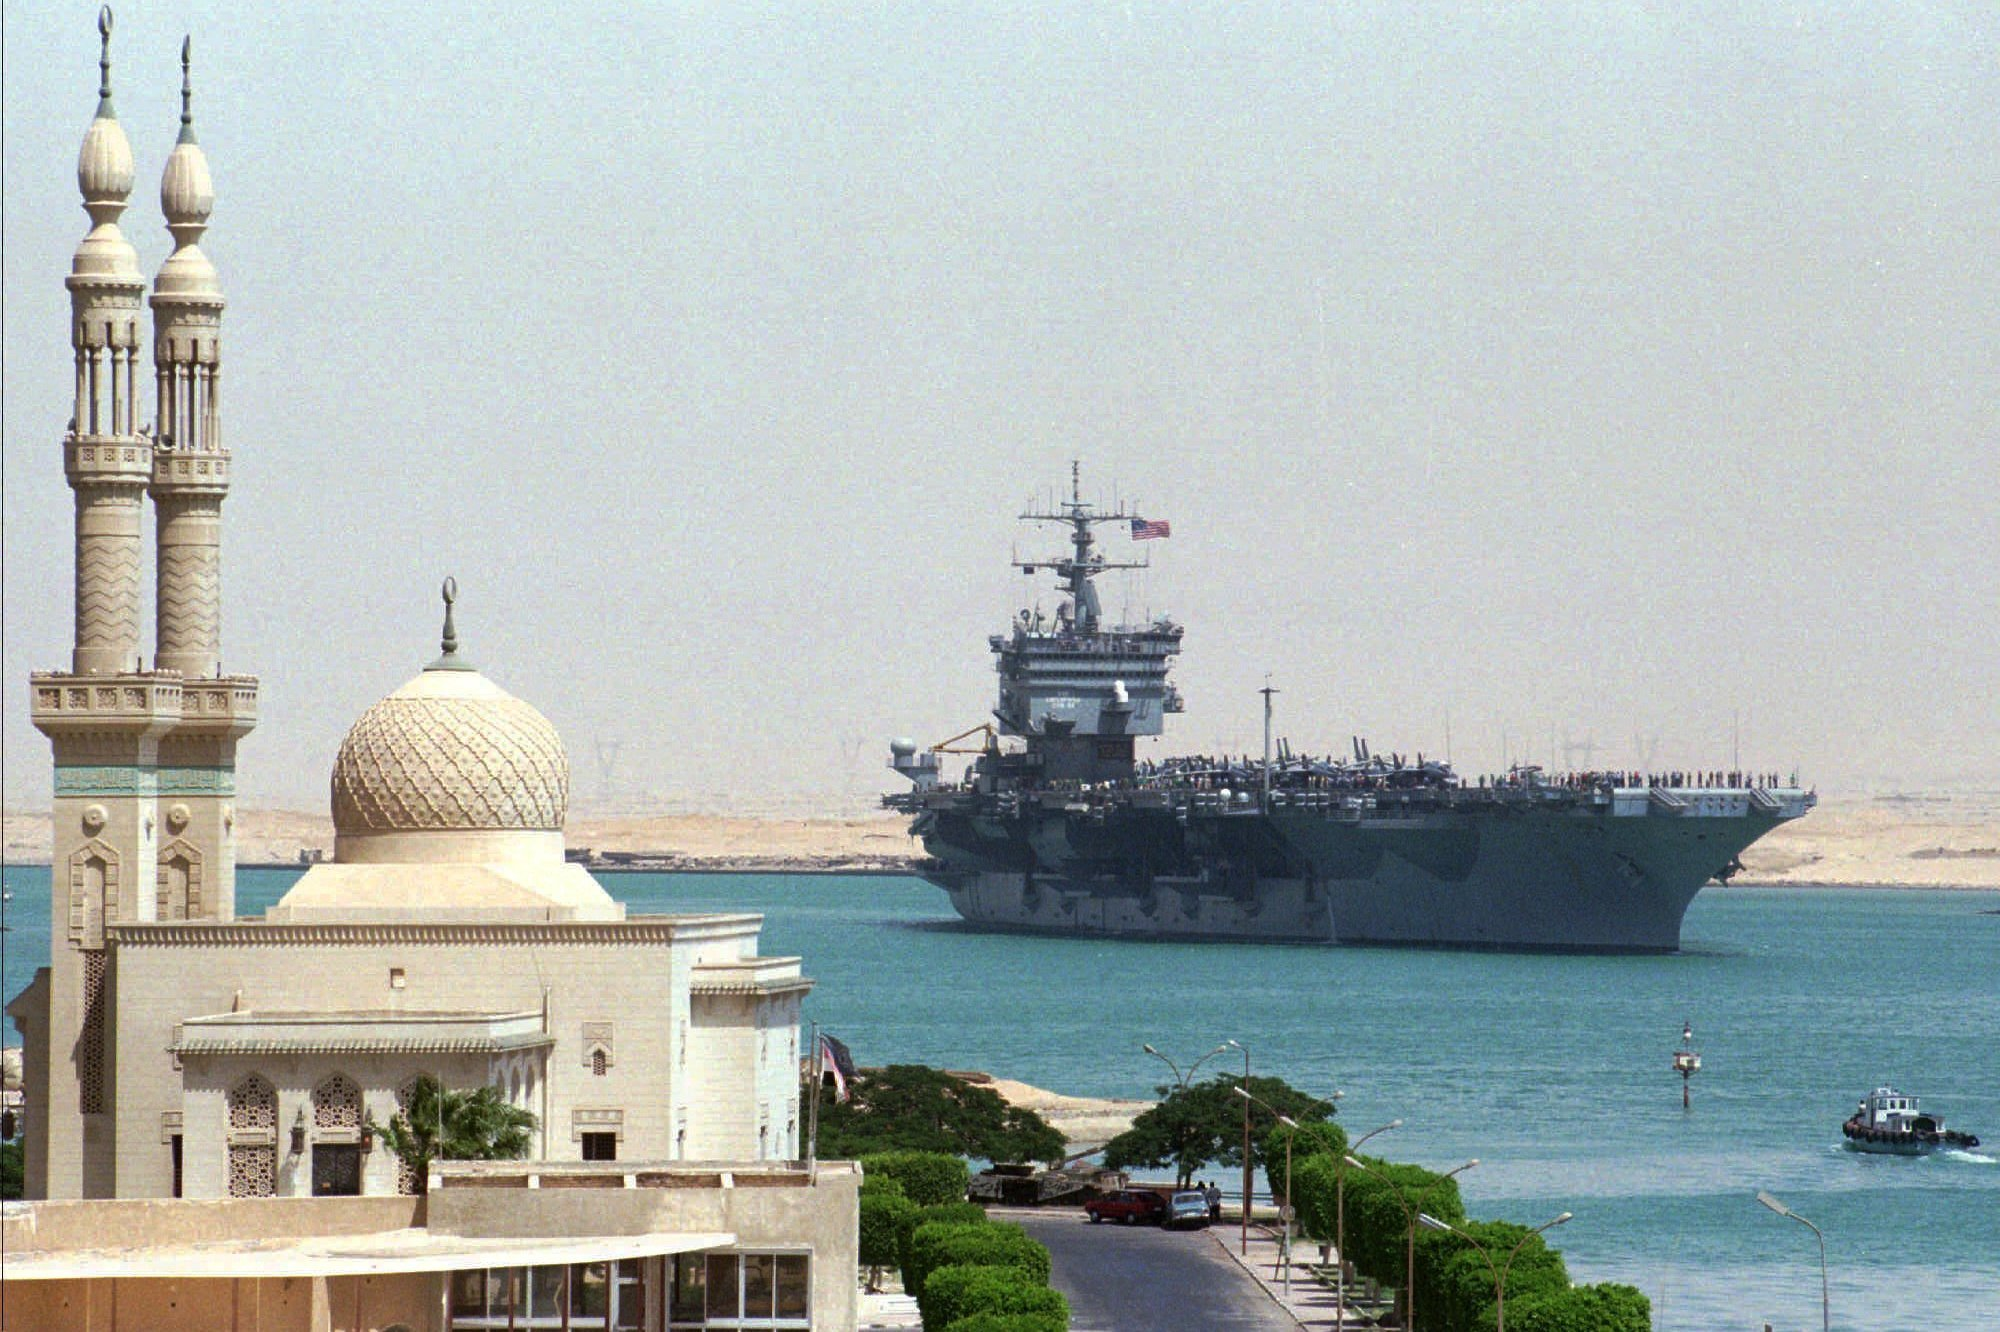 The Enterprise transits the Suez Canal on Sept. 15, 1996. The aircraft carrier was en route from the Adriatic to join existing U.S. forces in the Persian Gulf for possible action against Iraqi targets.